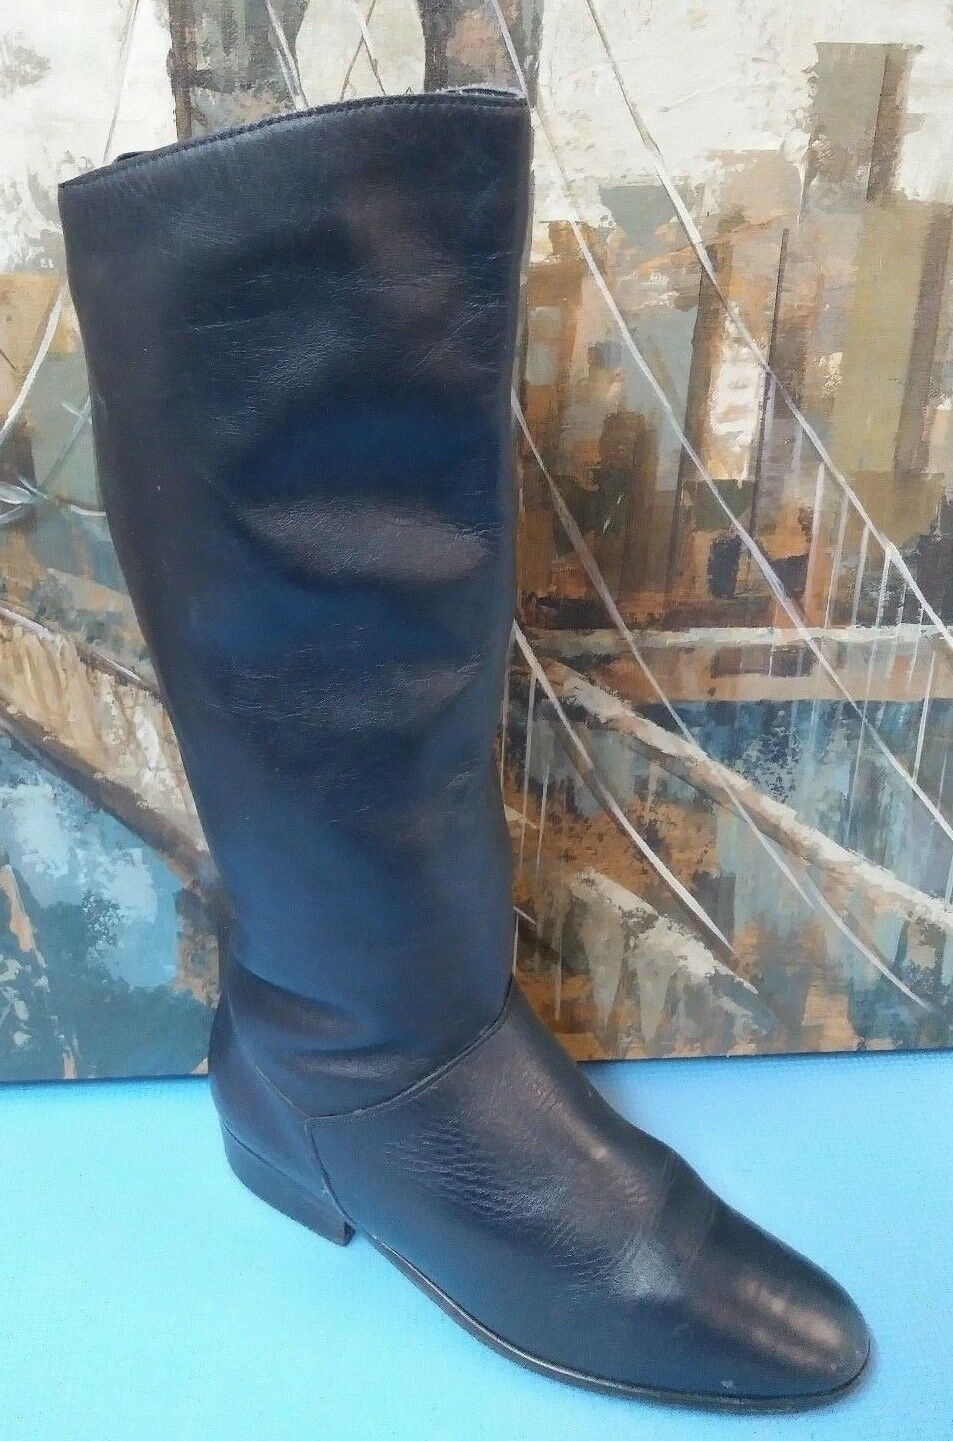 Hunt Club Black Leather Riding Boots Size 9 W  Style 199638